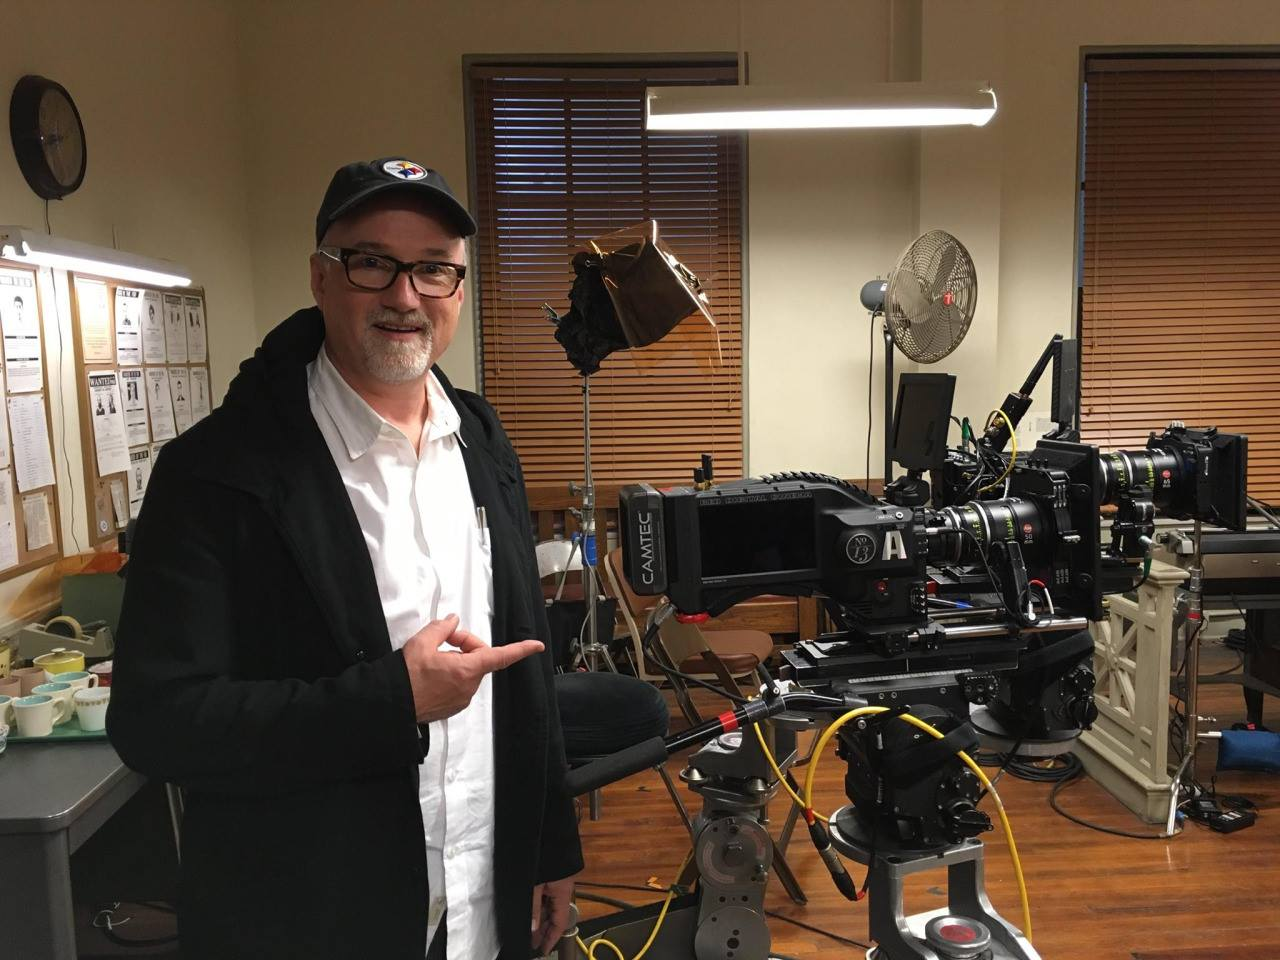 David Fincher pictured with a custom Xenomorph Red Camera outfitted with Camtec accessories on the set of  Mindhunter.